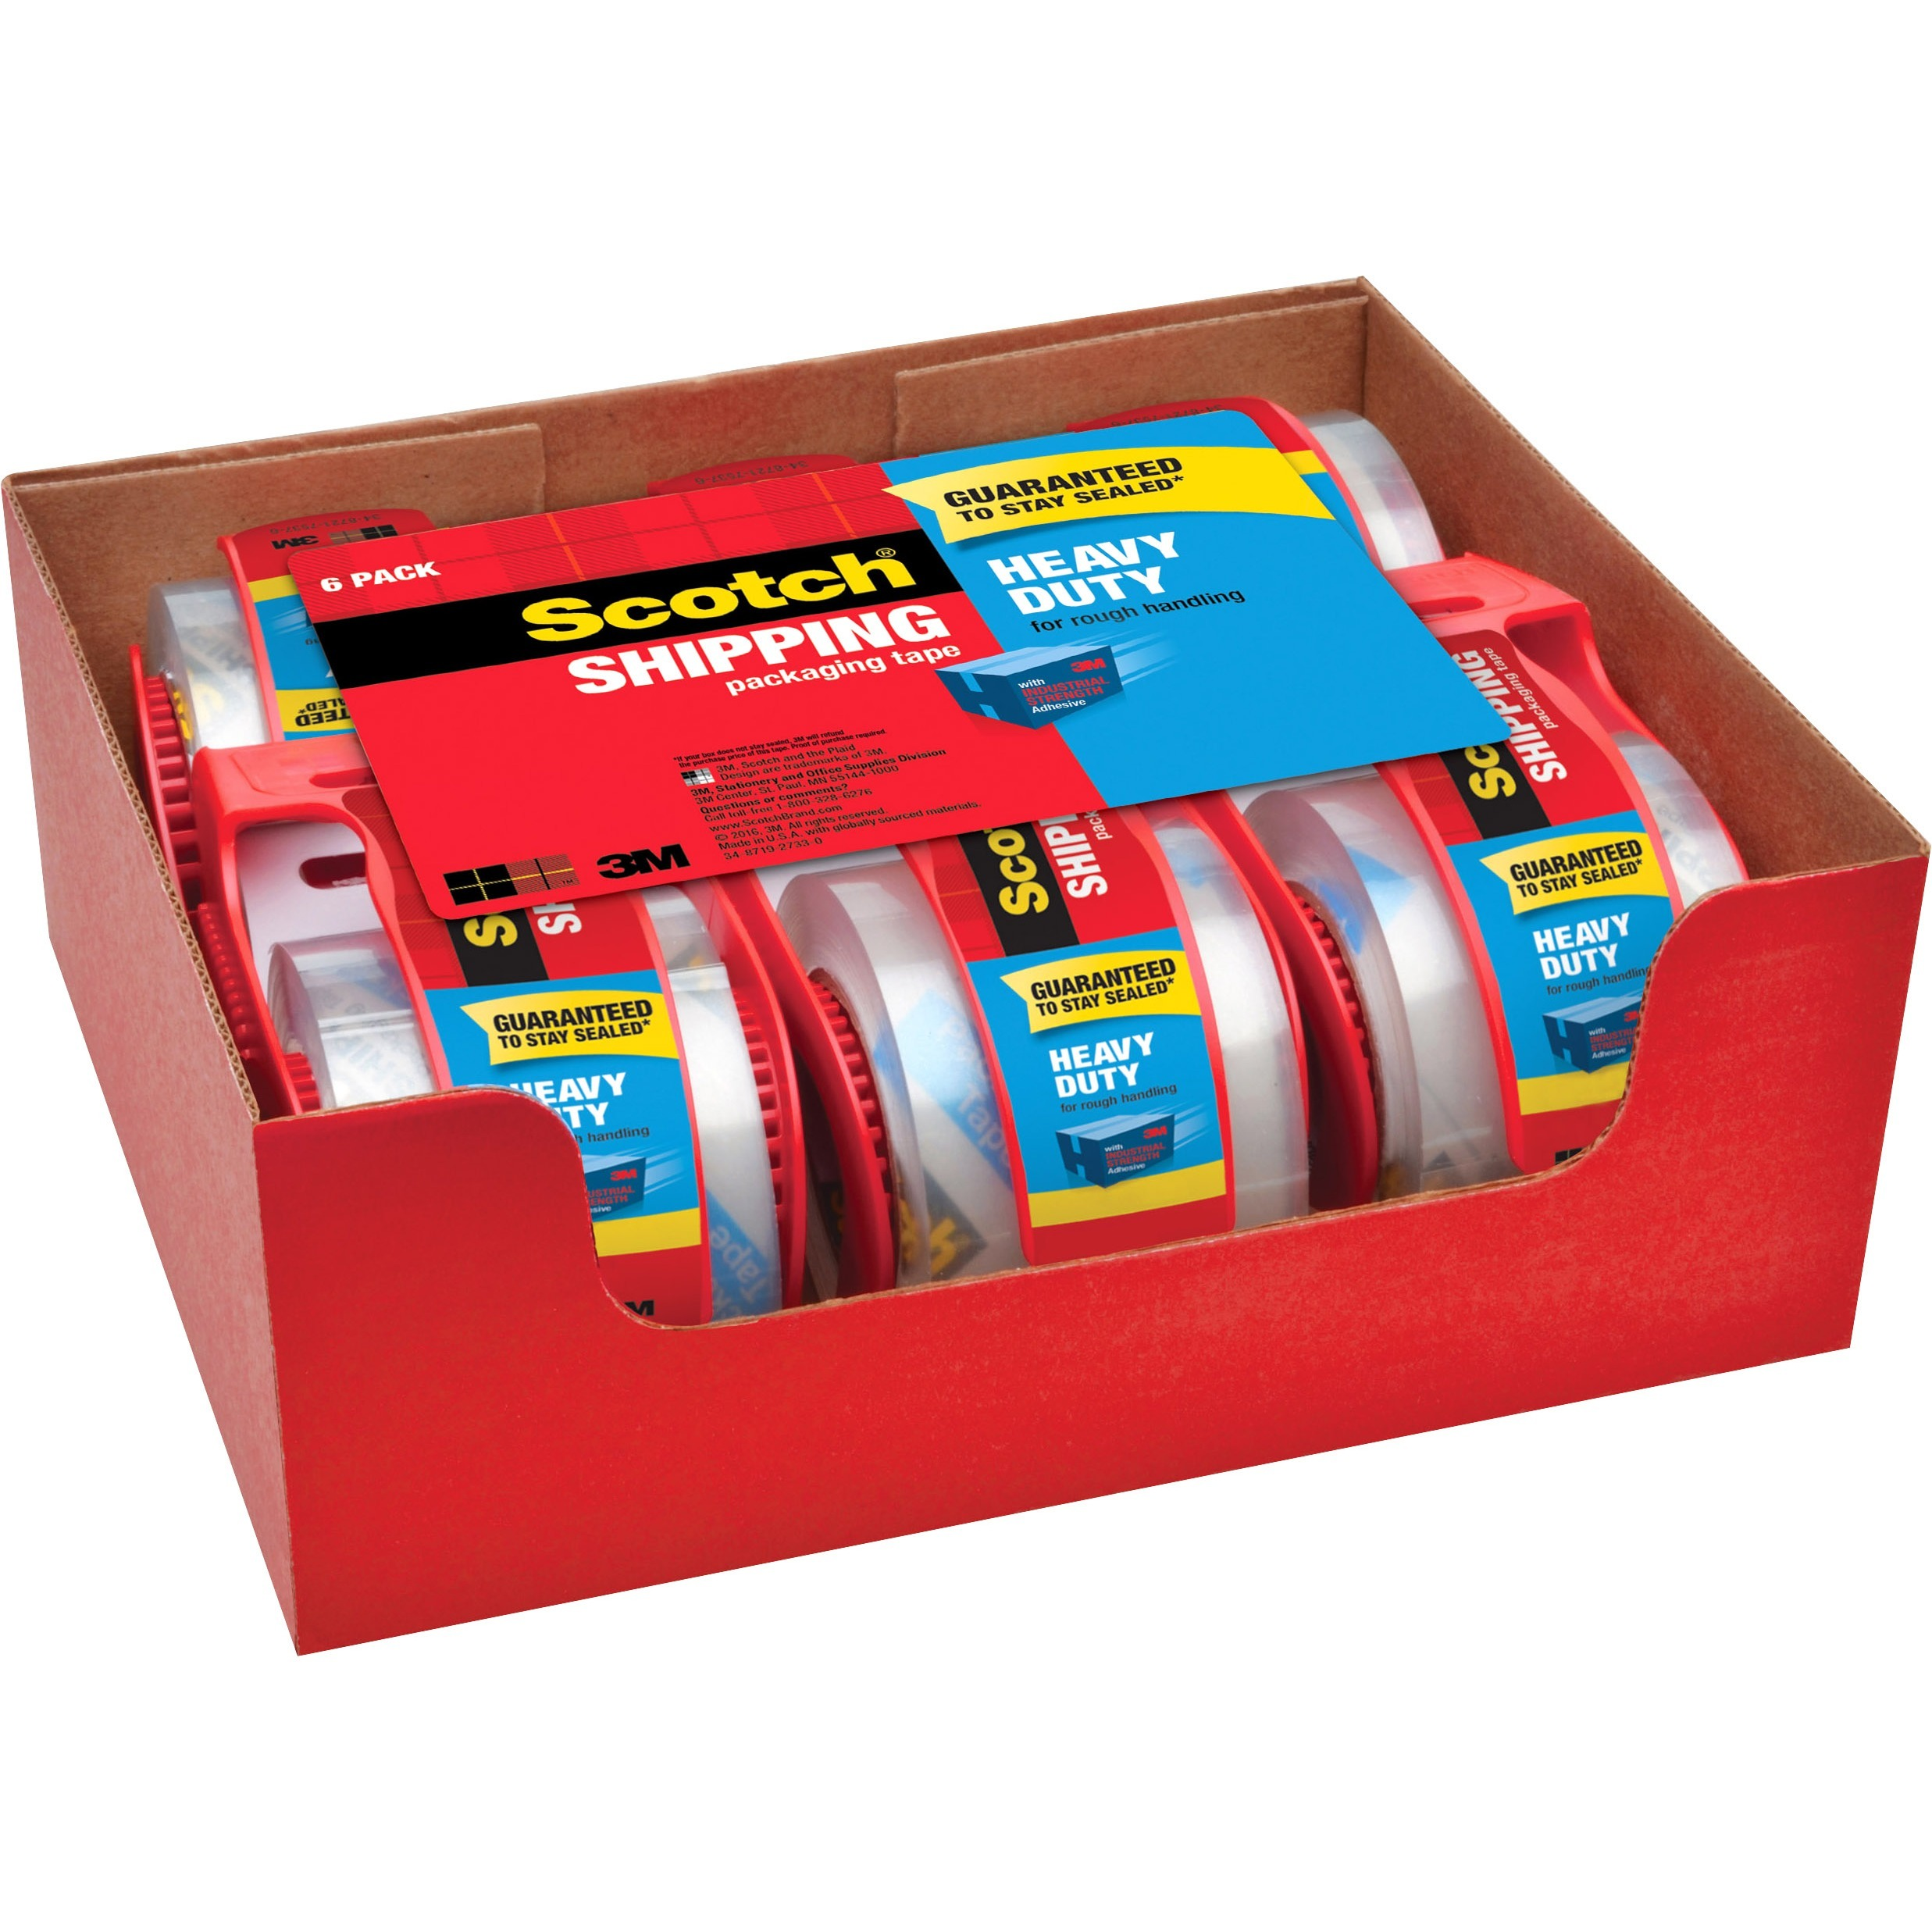 "3850 Heavy-Duty Packaging Tape in Sure Start Disp., 1.88"" x 800"", Clear, 6/Pack"